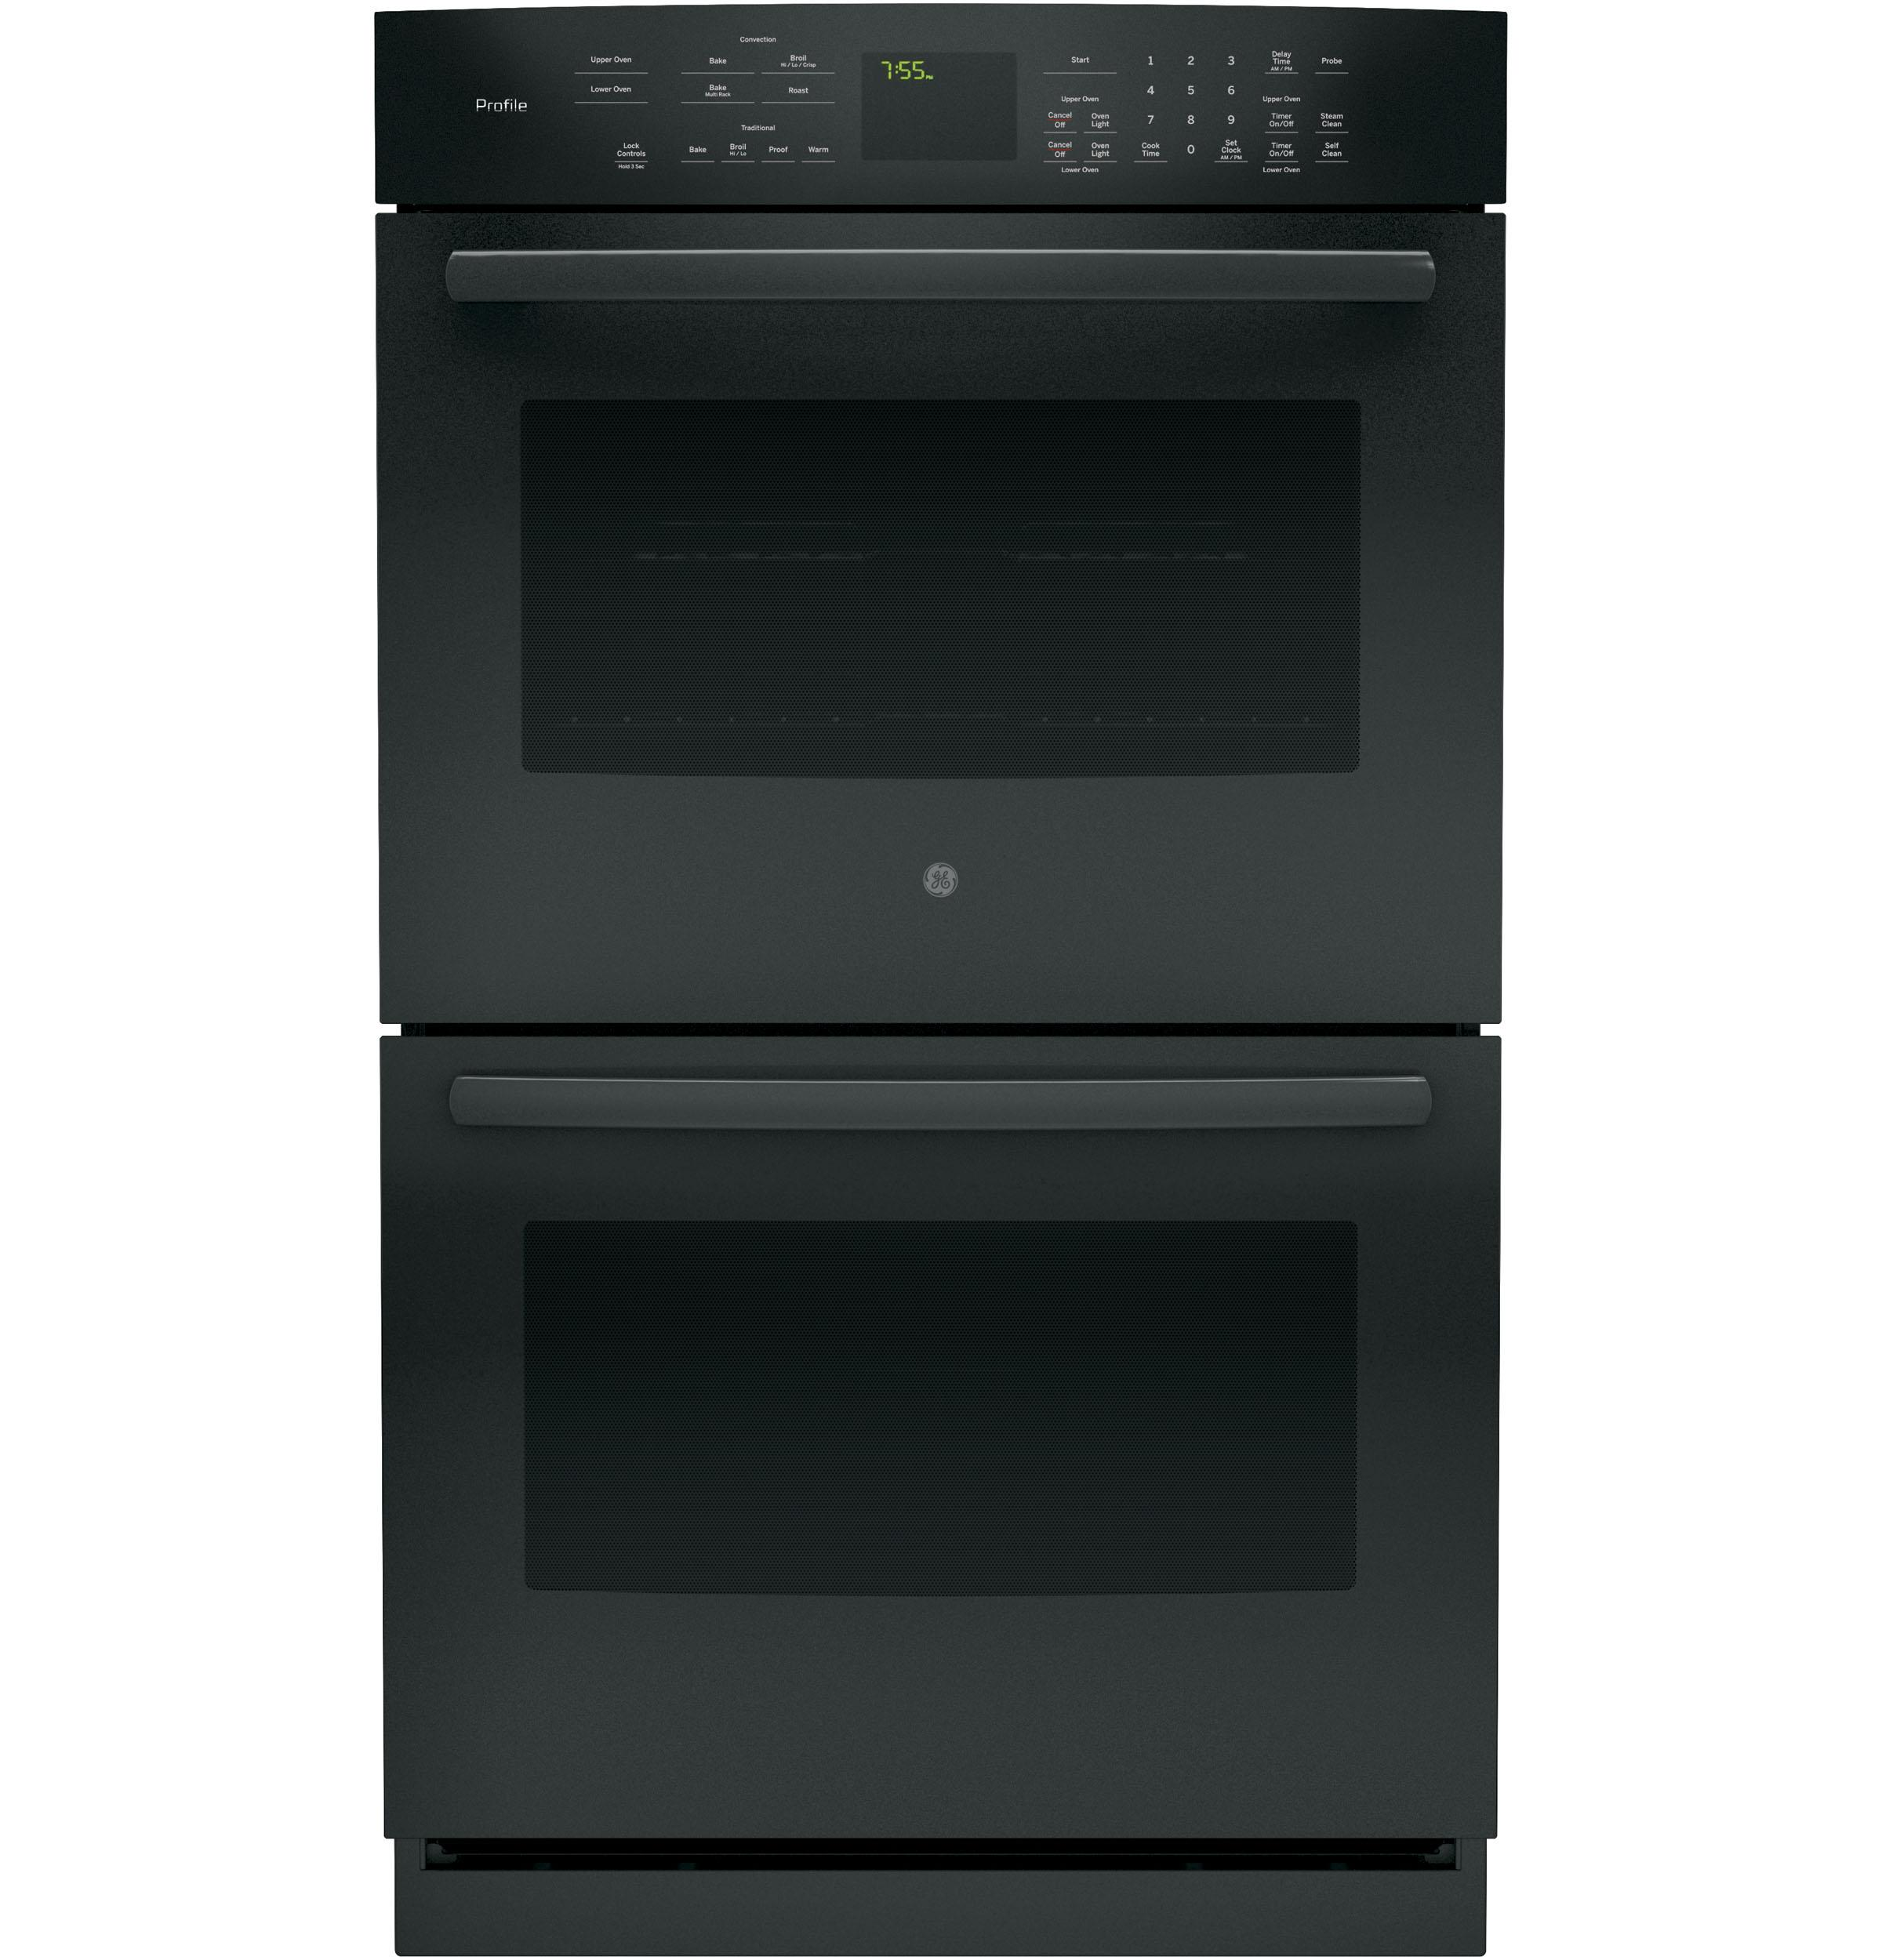 GE APPLIANCES PT7550DFBB  Black on ELECTRIC RANGESDOUBLE WALL ELECTRIC OVEN